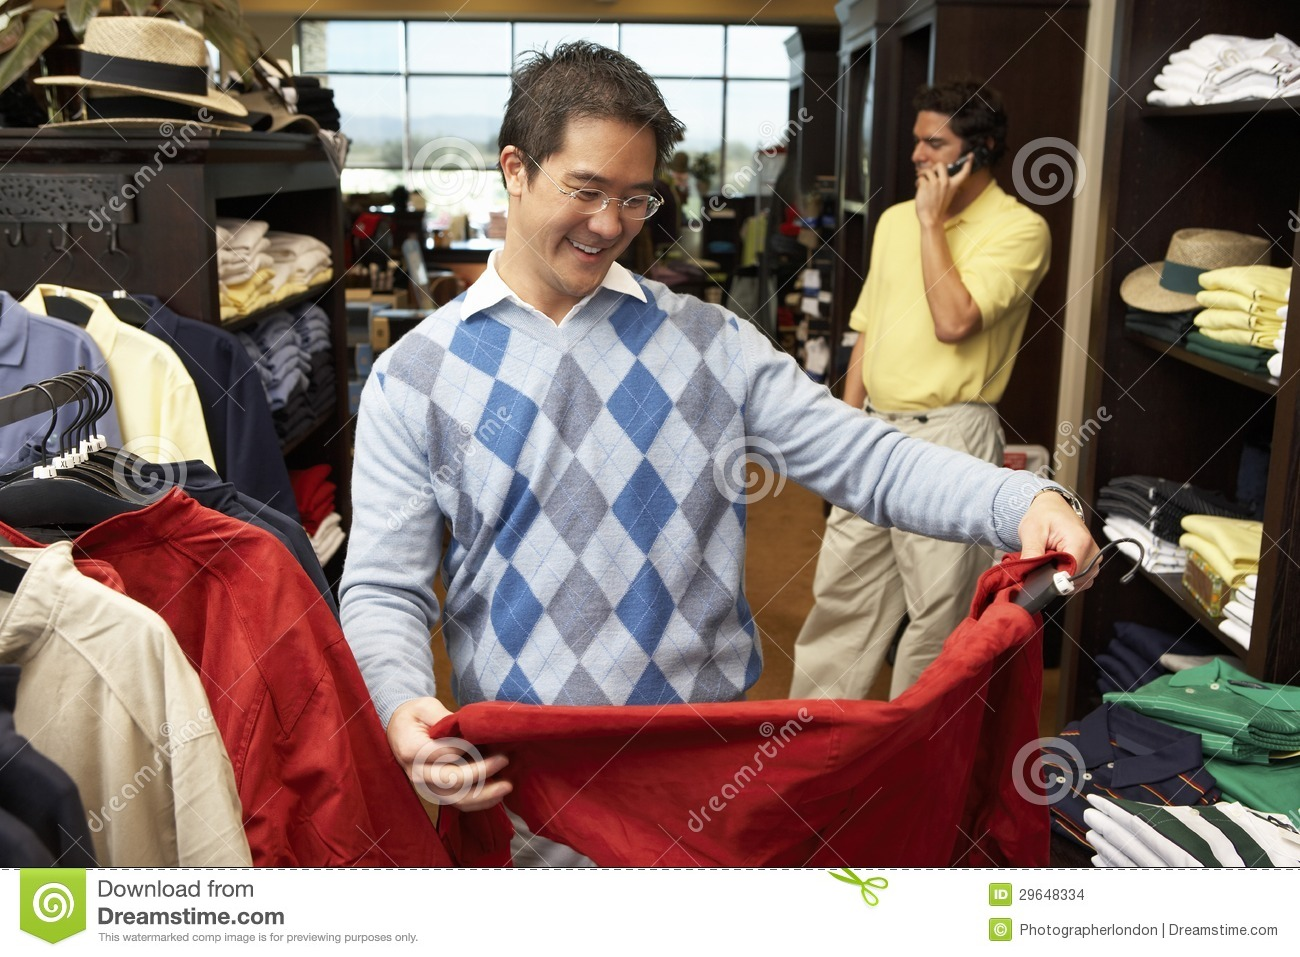 Happy Man Shopping In Clothing Store Stock Images - Image: 29648334